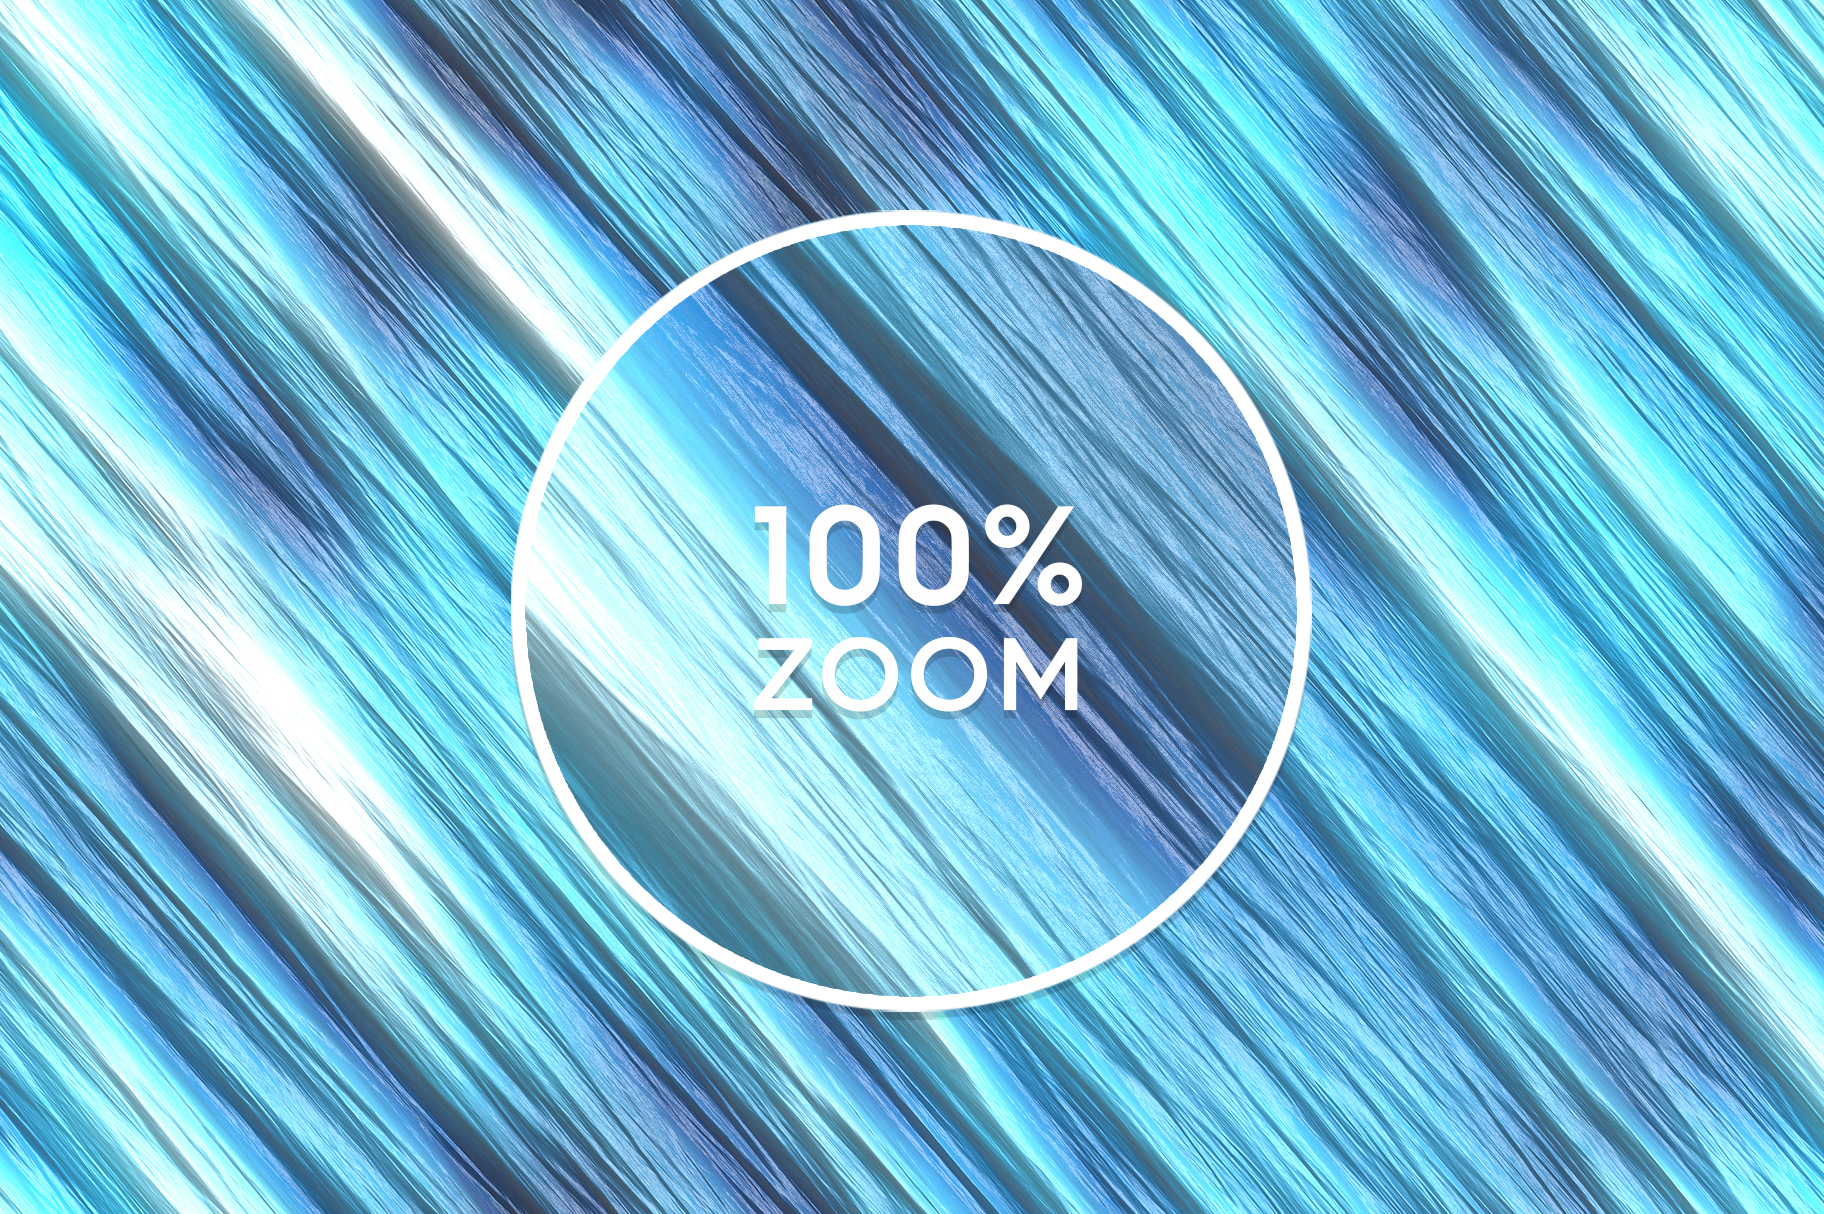 10 Noise Storm Background Textures. Seamless Transition. 100% Zoom.